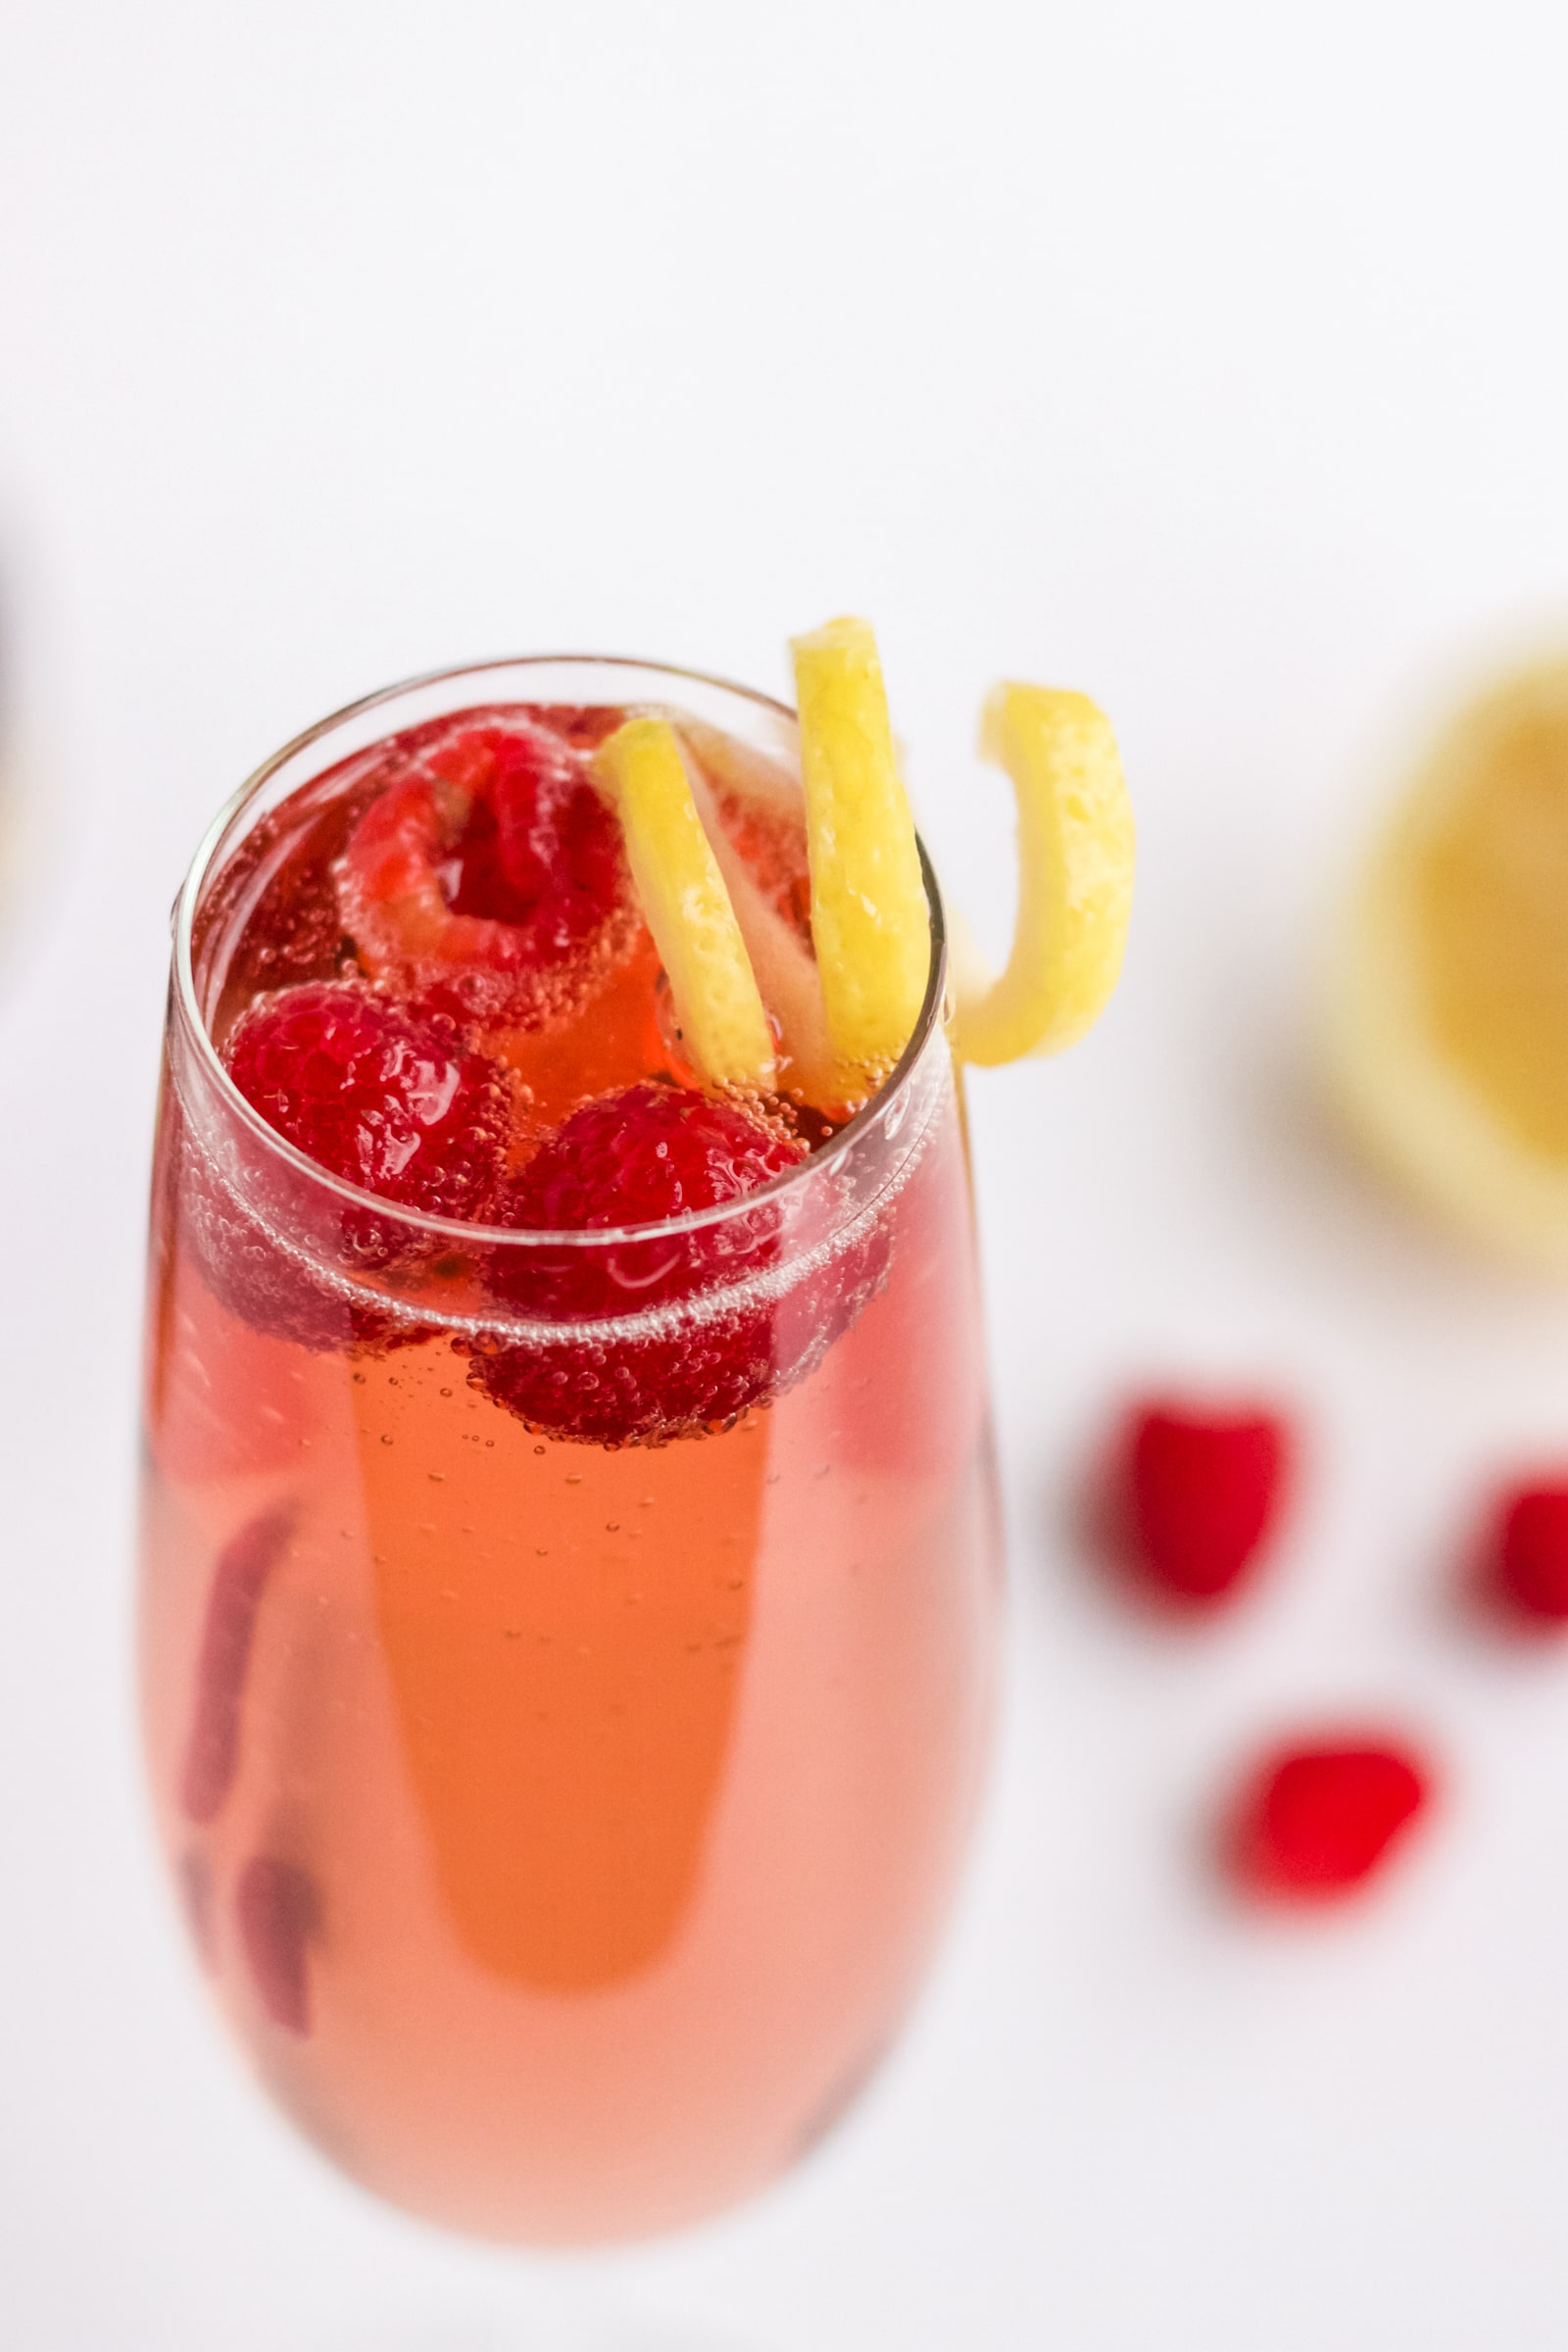 A close up image of chambord and champagne garnished with lemon twist and three raspberries.